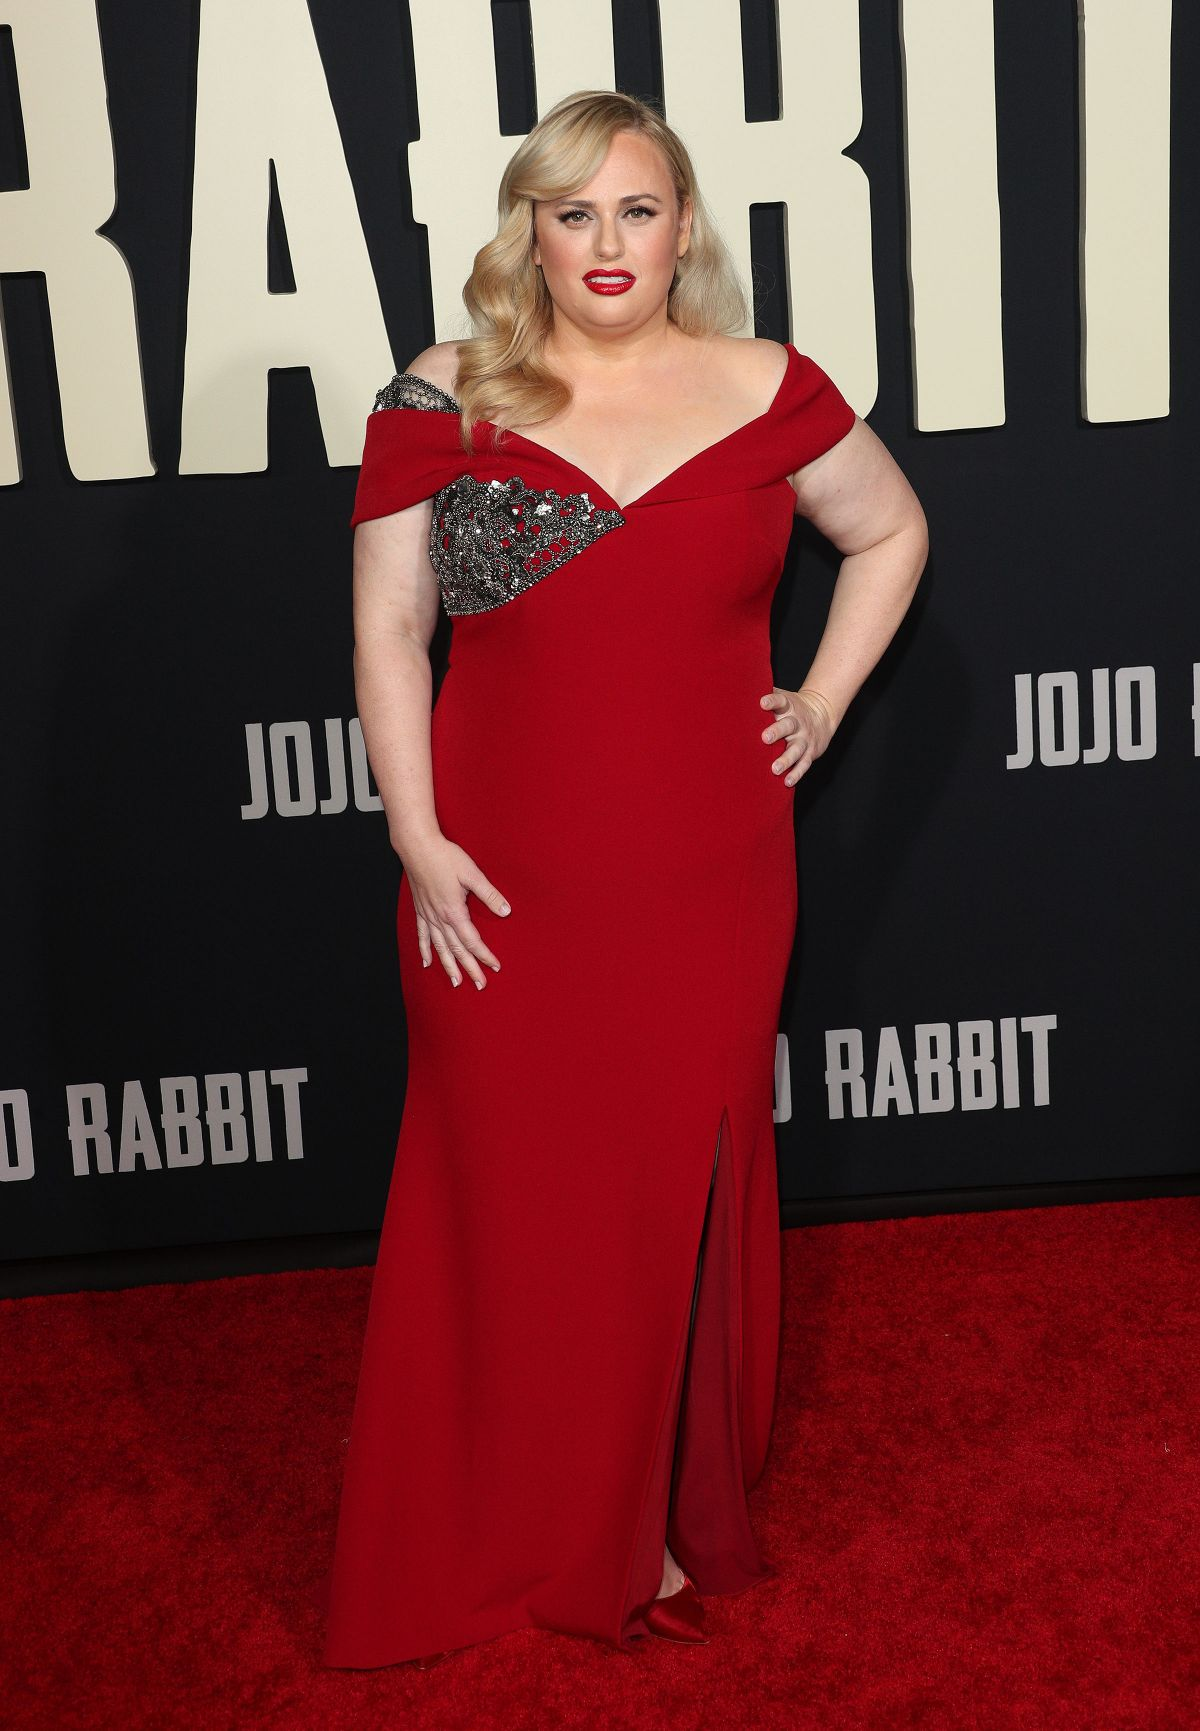 rebel-wilson-in-badgley-mischka-jojo-rabbit-premiere-in-los-angeles